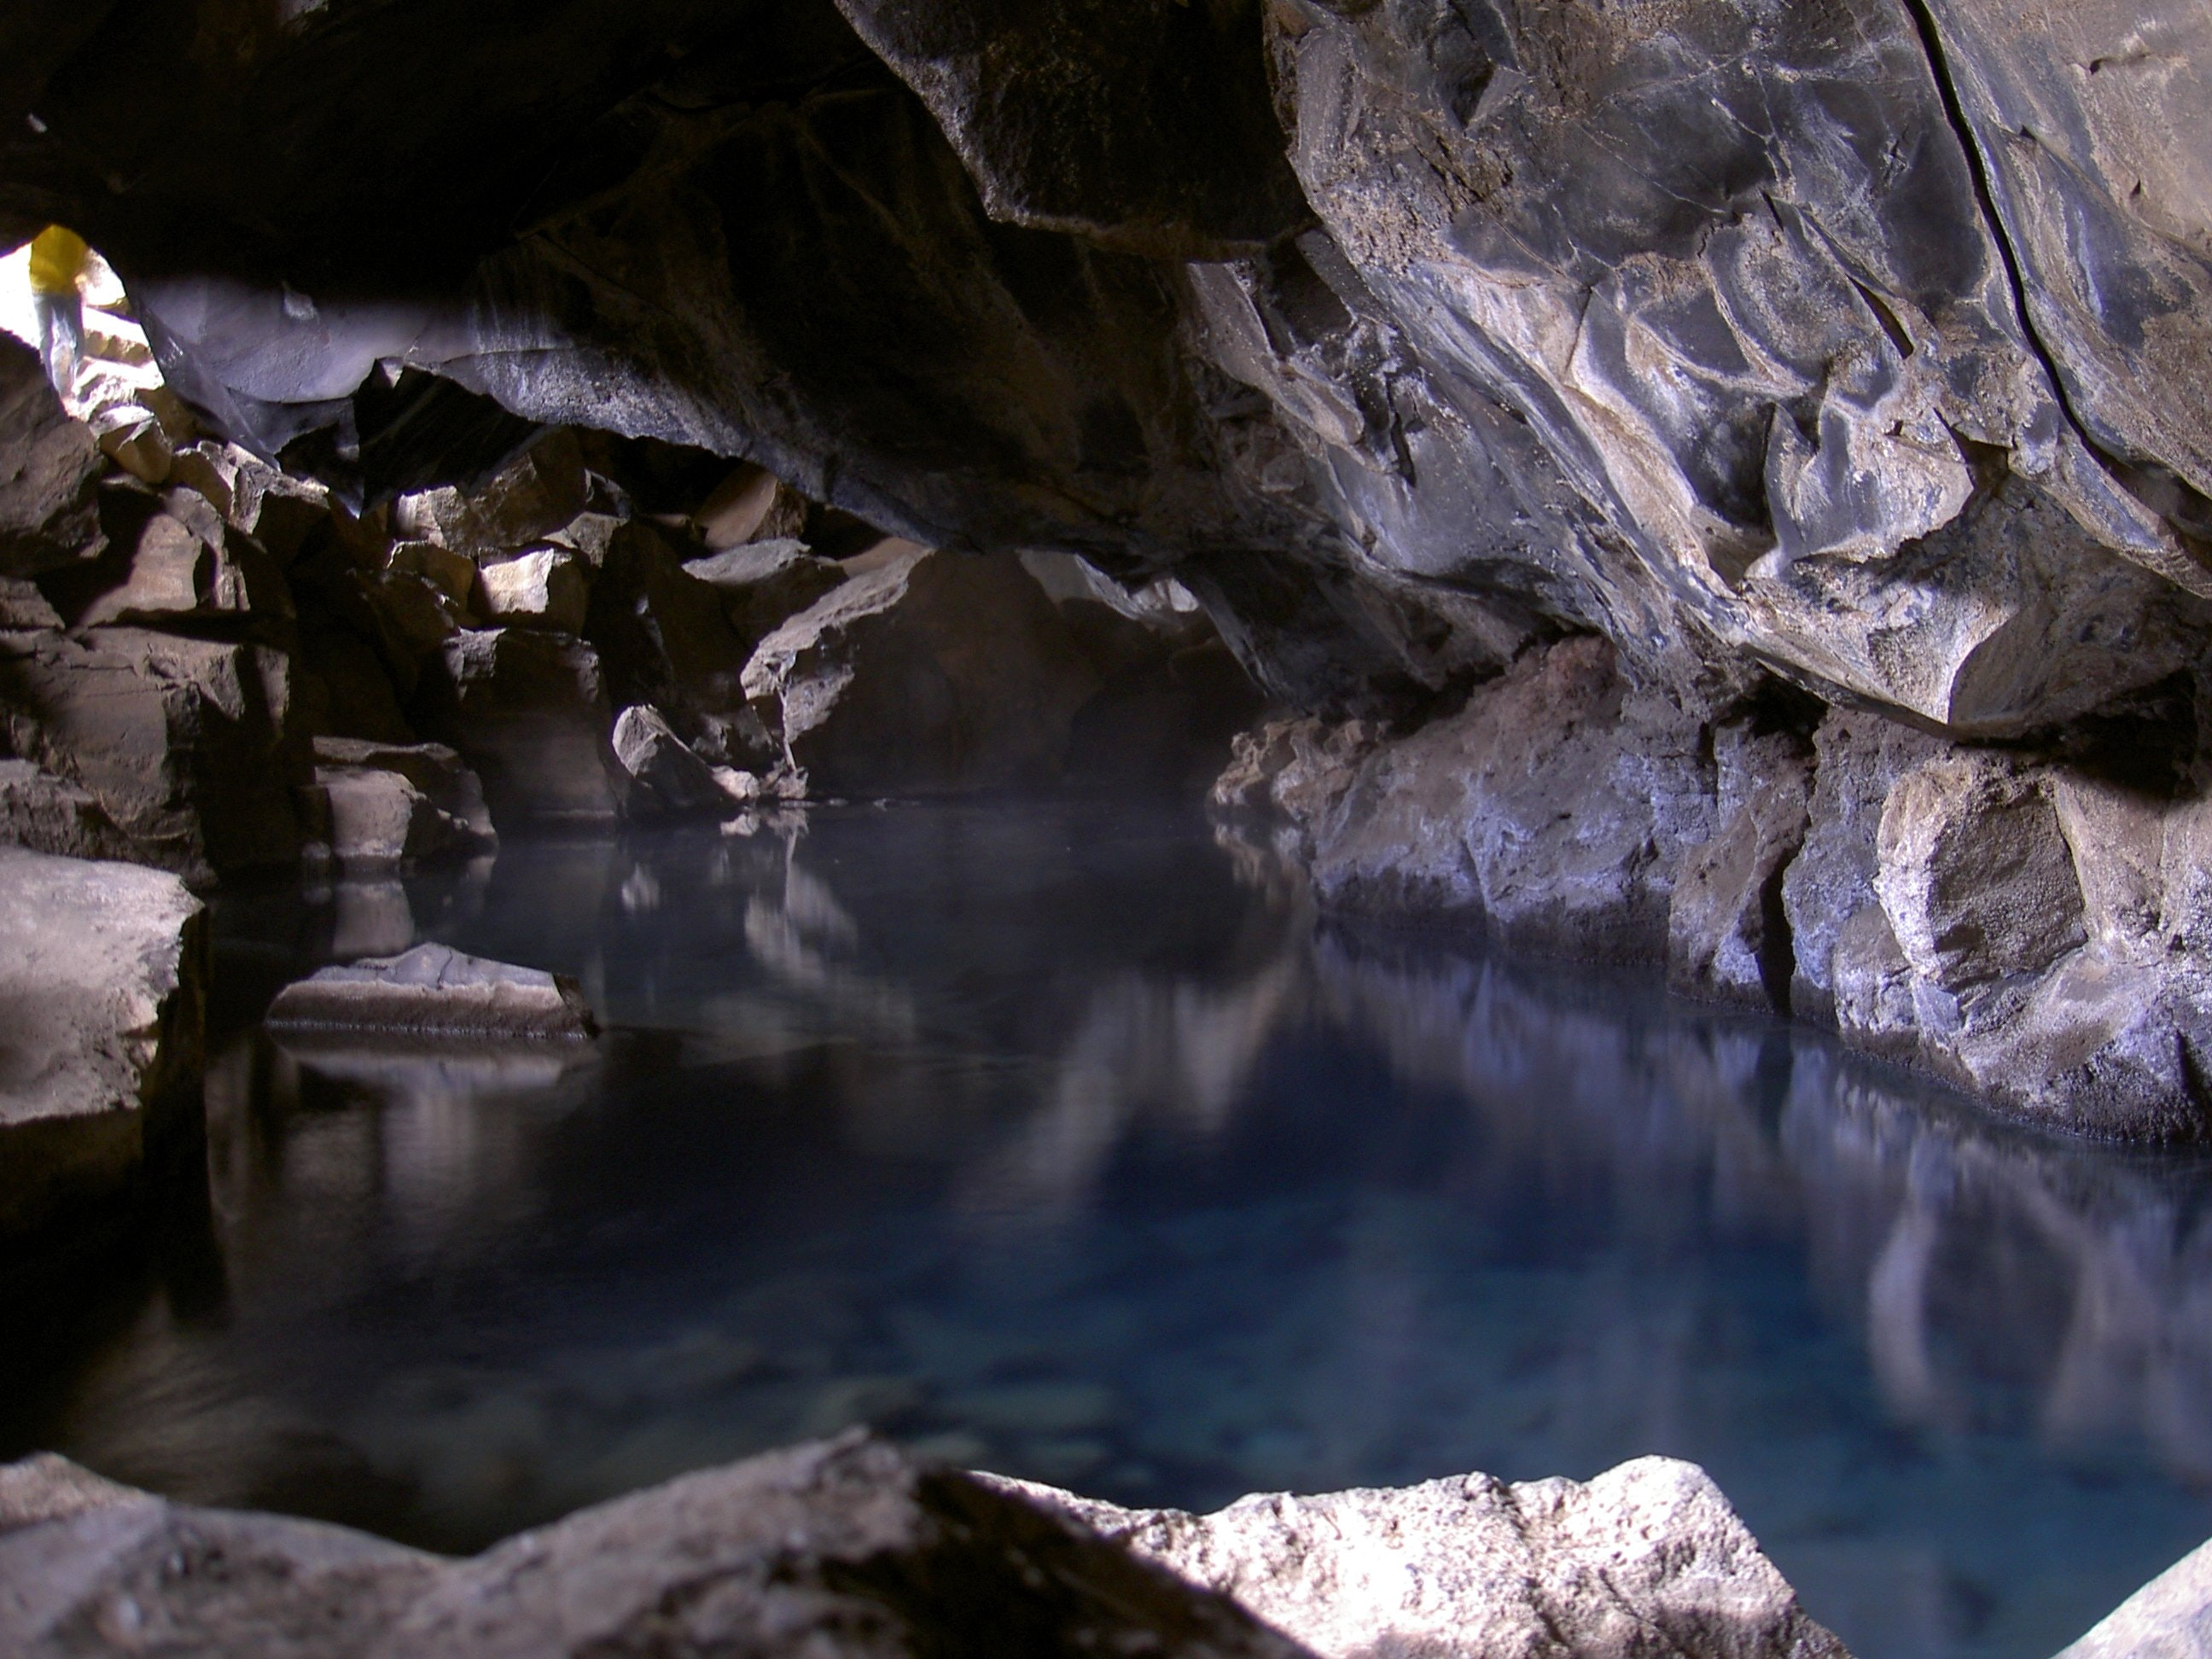 Grjotagja cave and hot spring, picture by Chmee2 from wikimedia commons